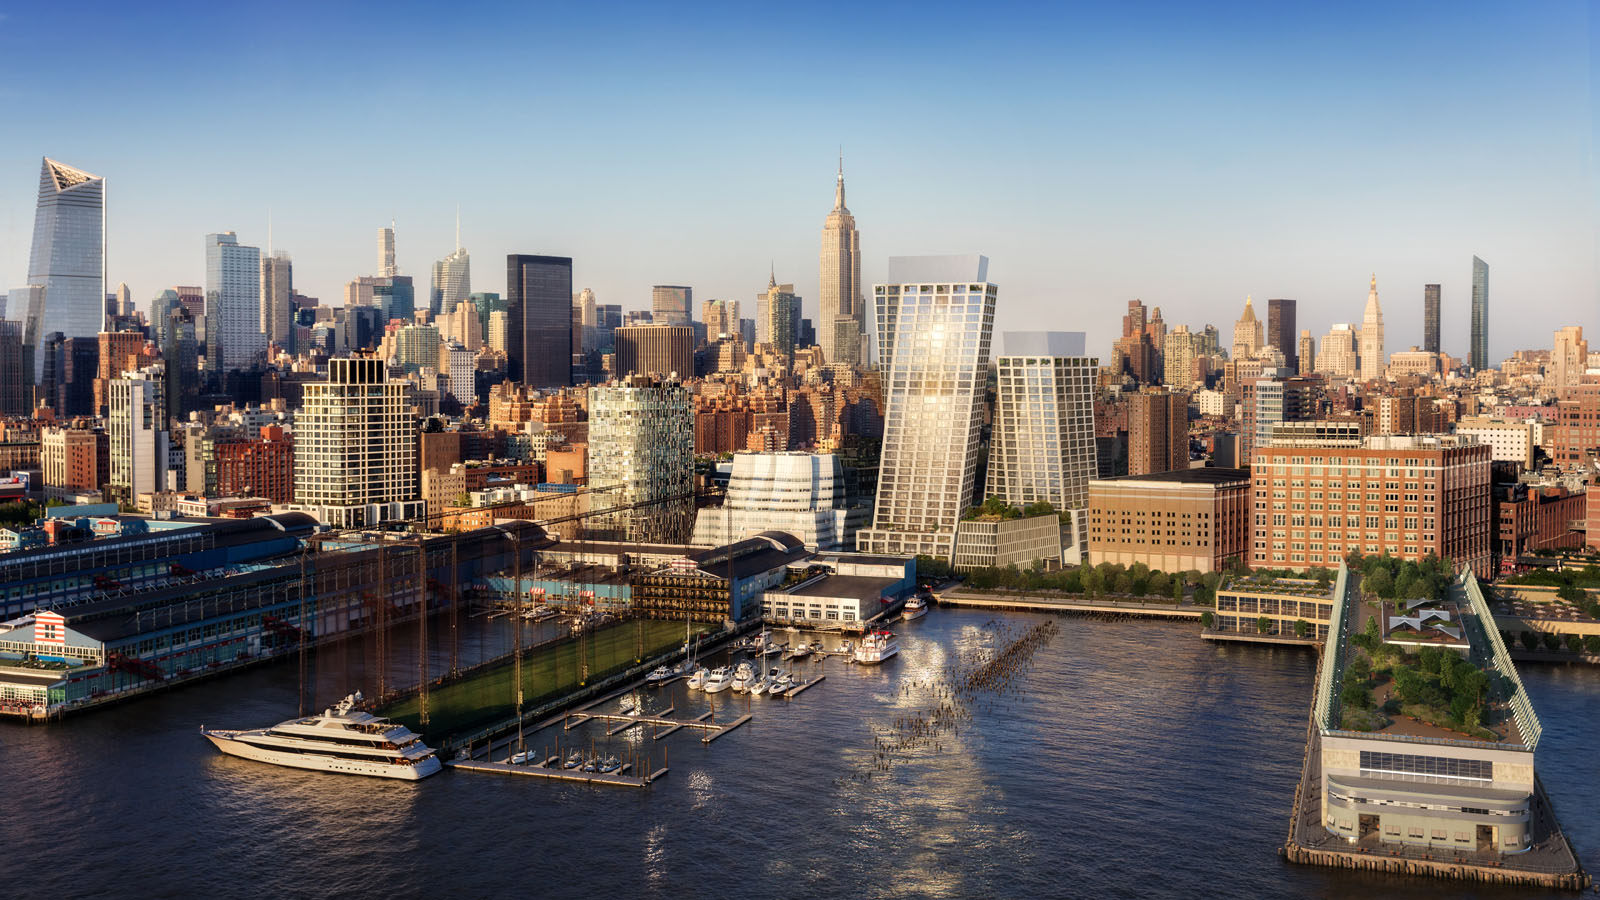 4.-The-XI-Rendering-Credit-Dbox-for-HFZ-Capital-Group-1 (1)